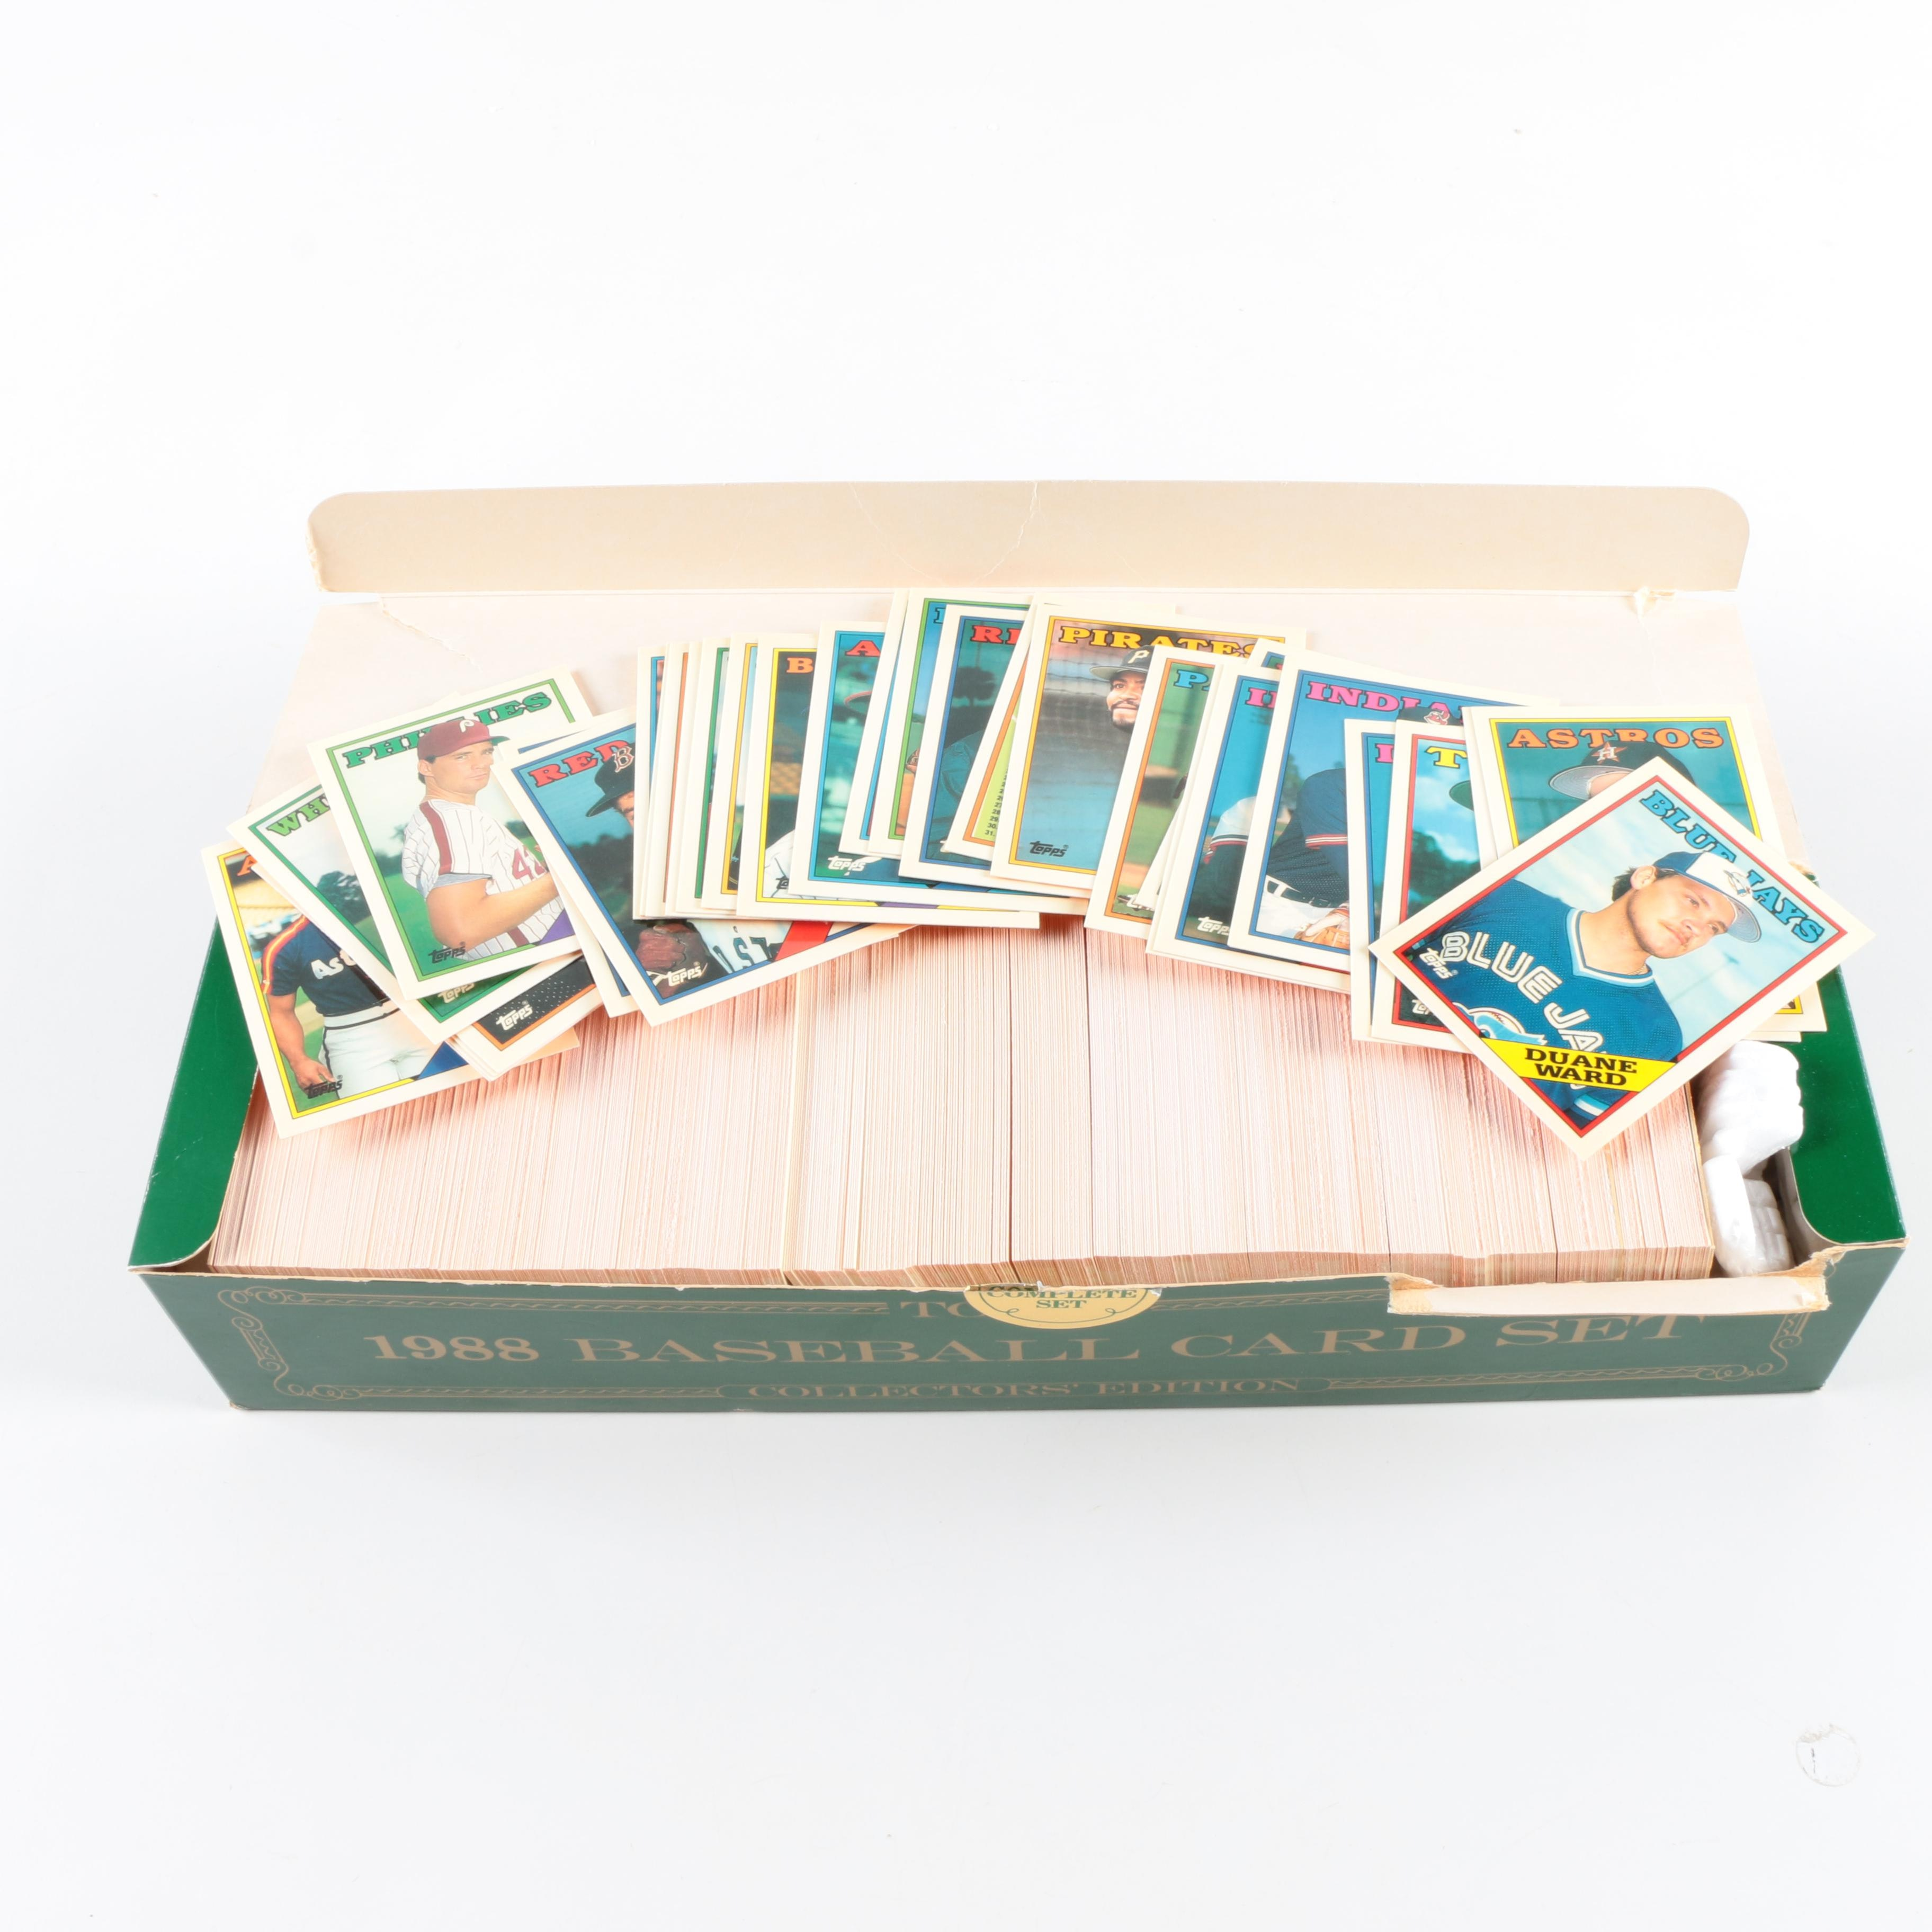 1988 Topps Tiffany Set Factory Set Collectors' Edition